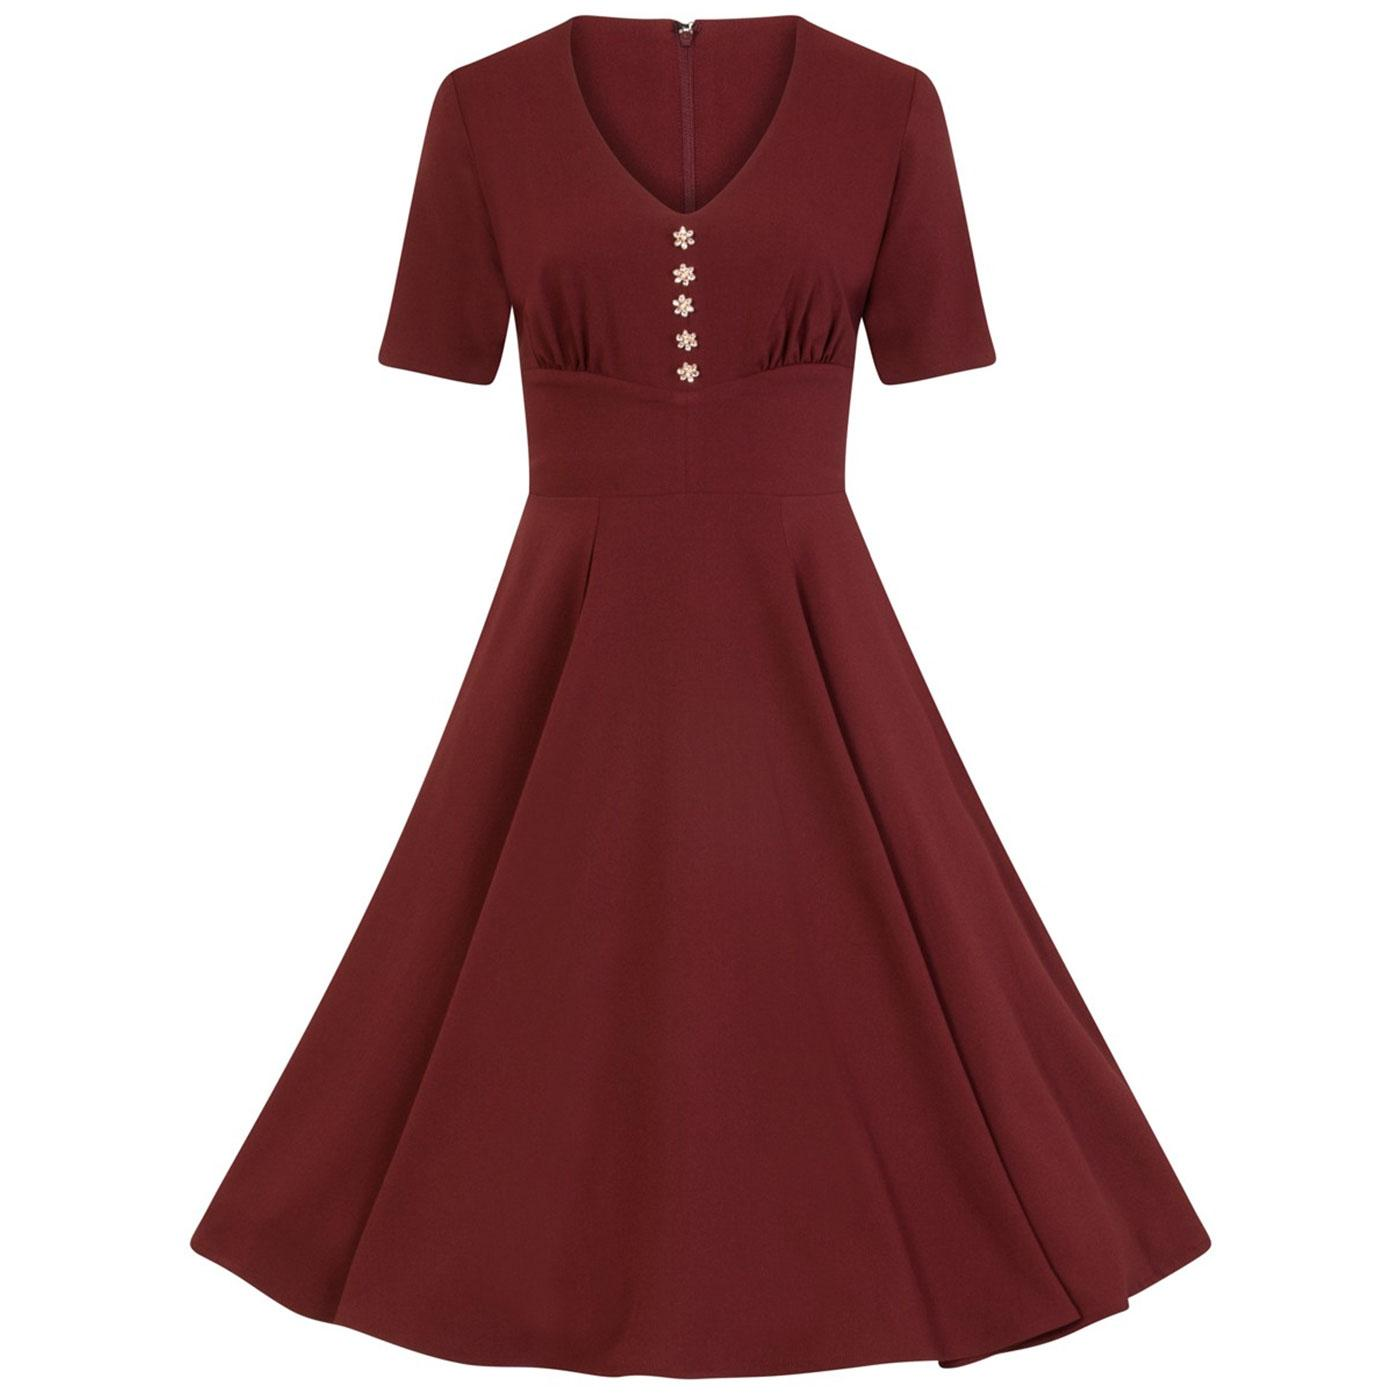 Mila HELL BUNNY 40s Vintage V-neck Dress in Red